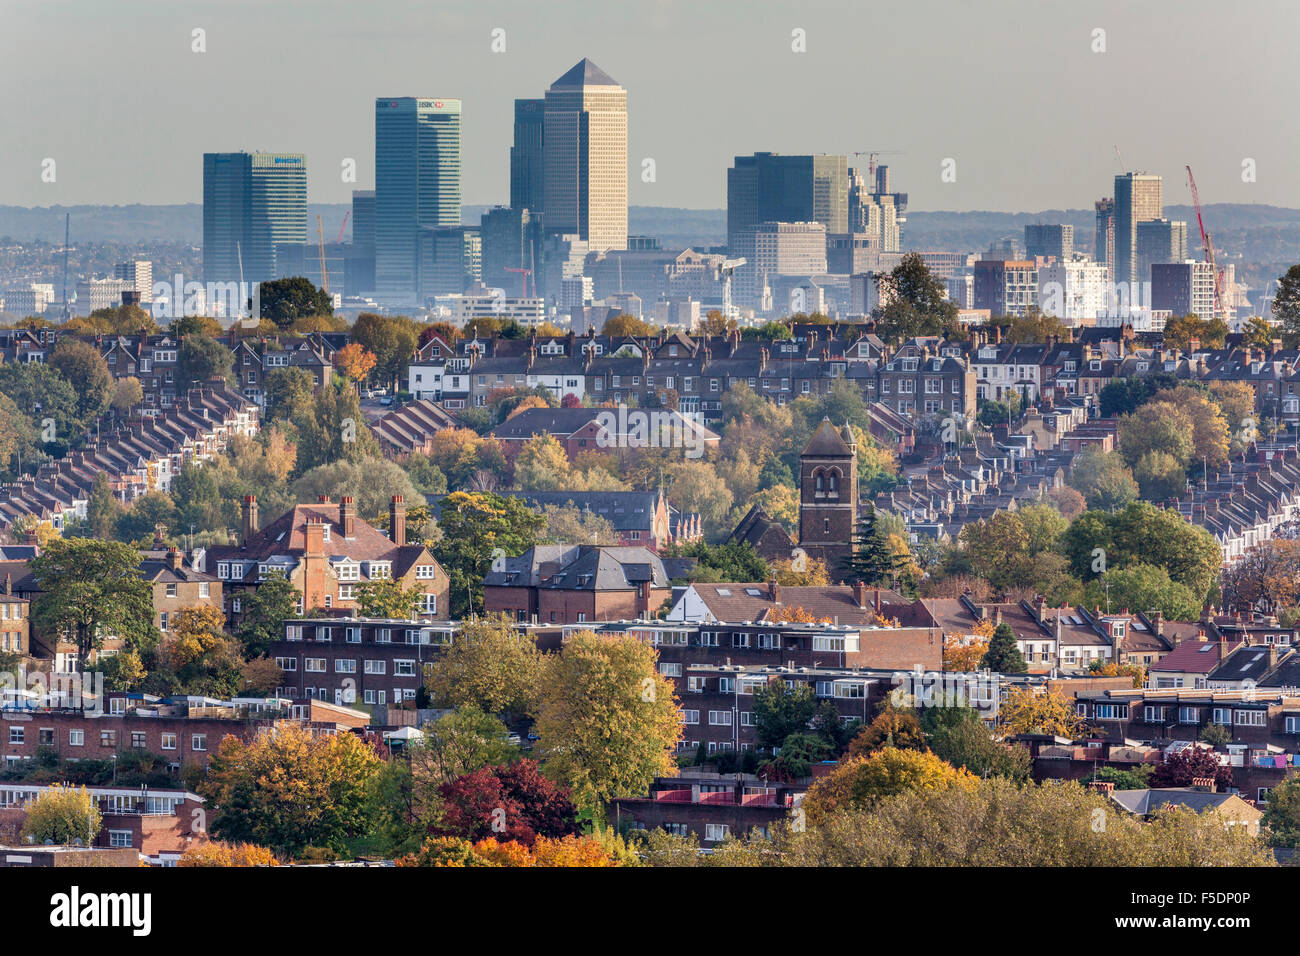 London  Docklands skyline seen over the North London districts of Hornsey and Crouch End, London N8 - Stock Image